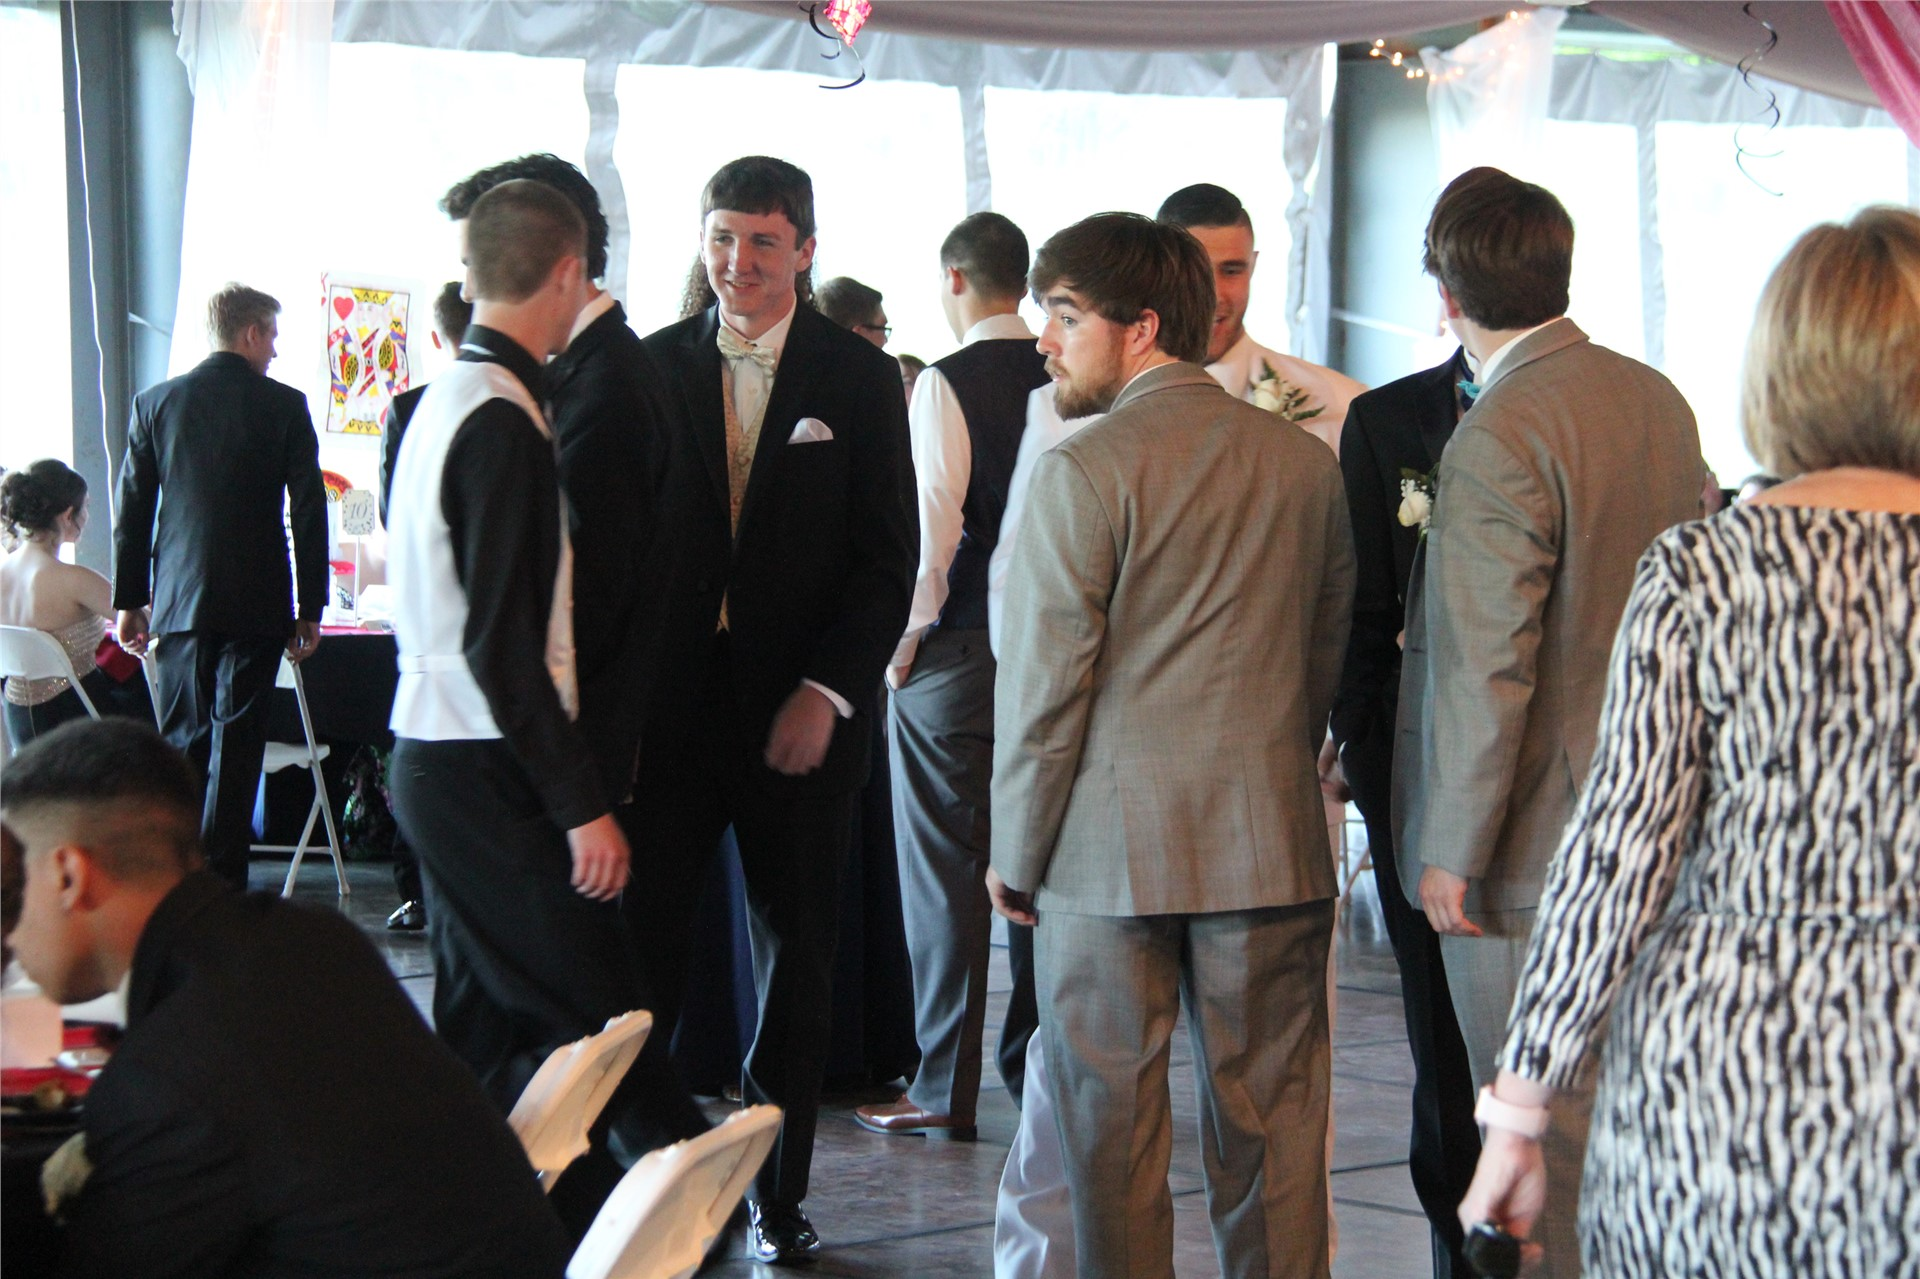 group of students socialize at prom event